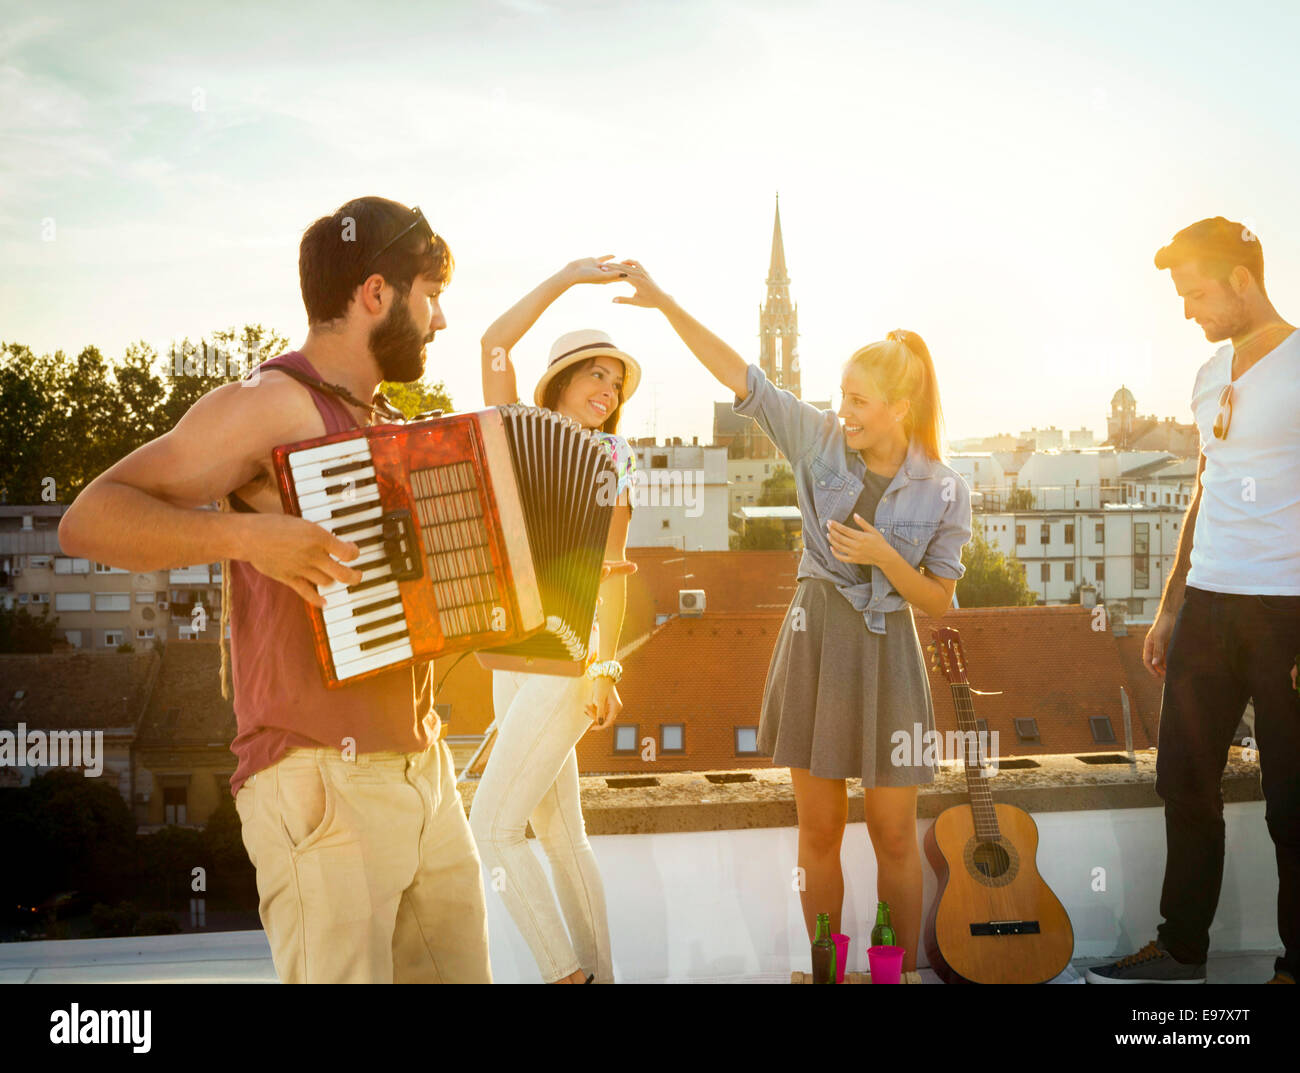 Young people having fun at rooftop party - Stock Image